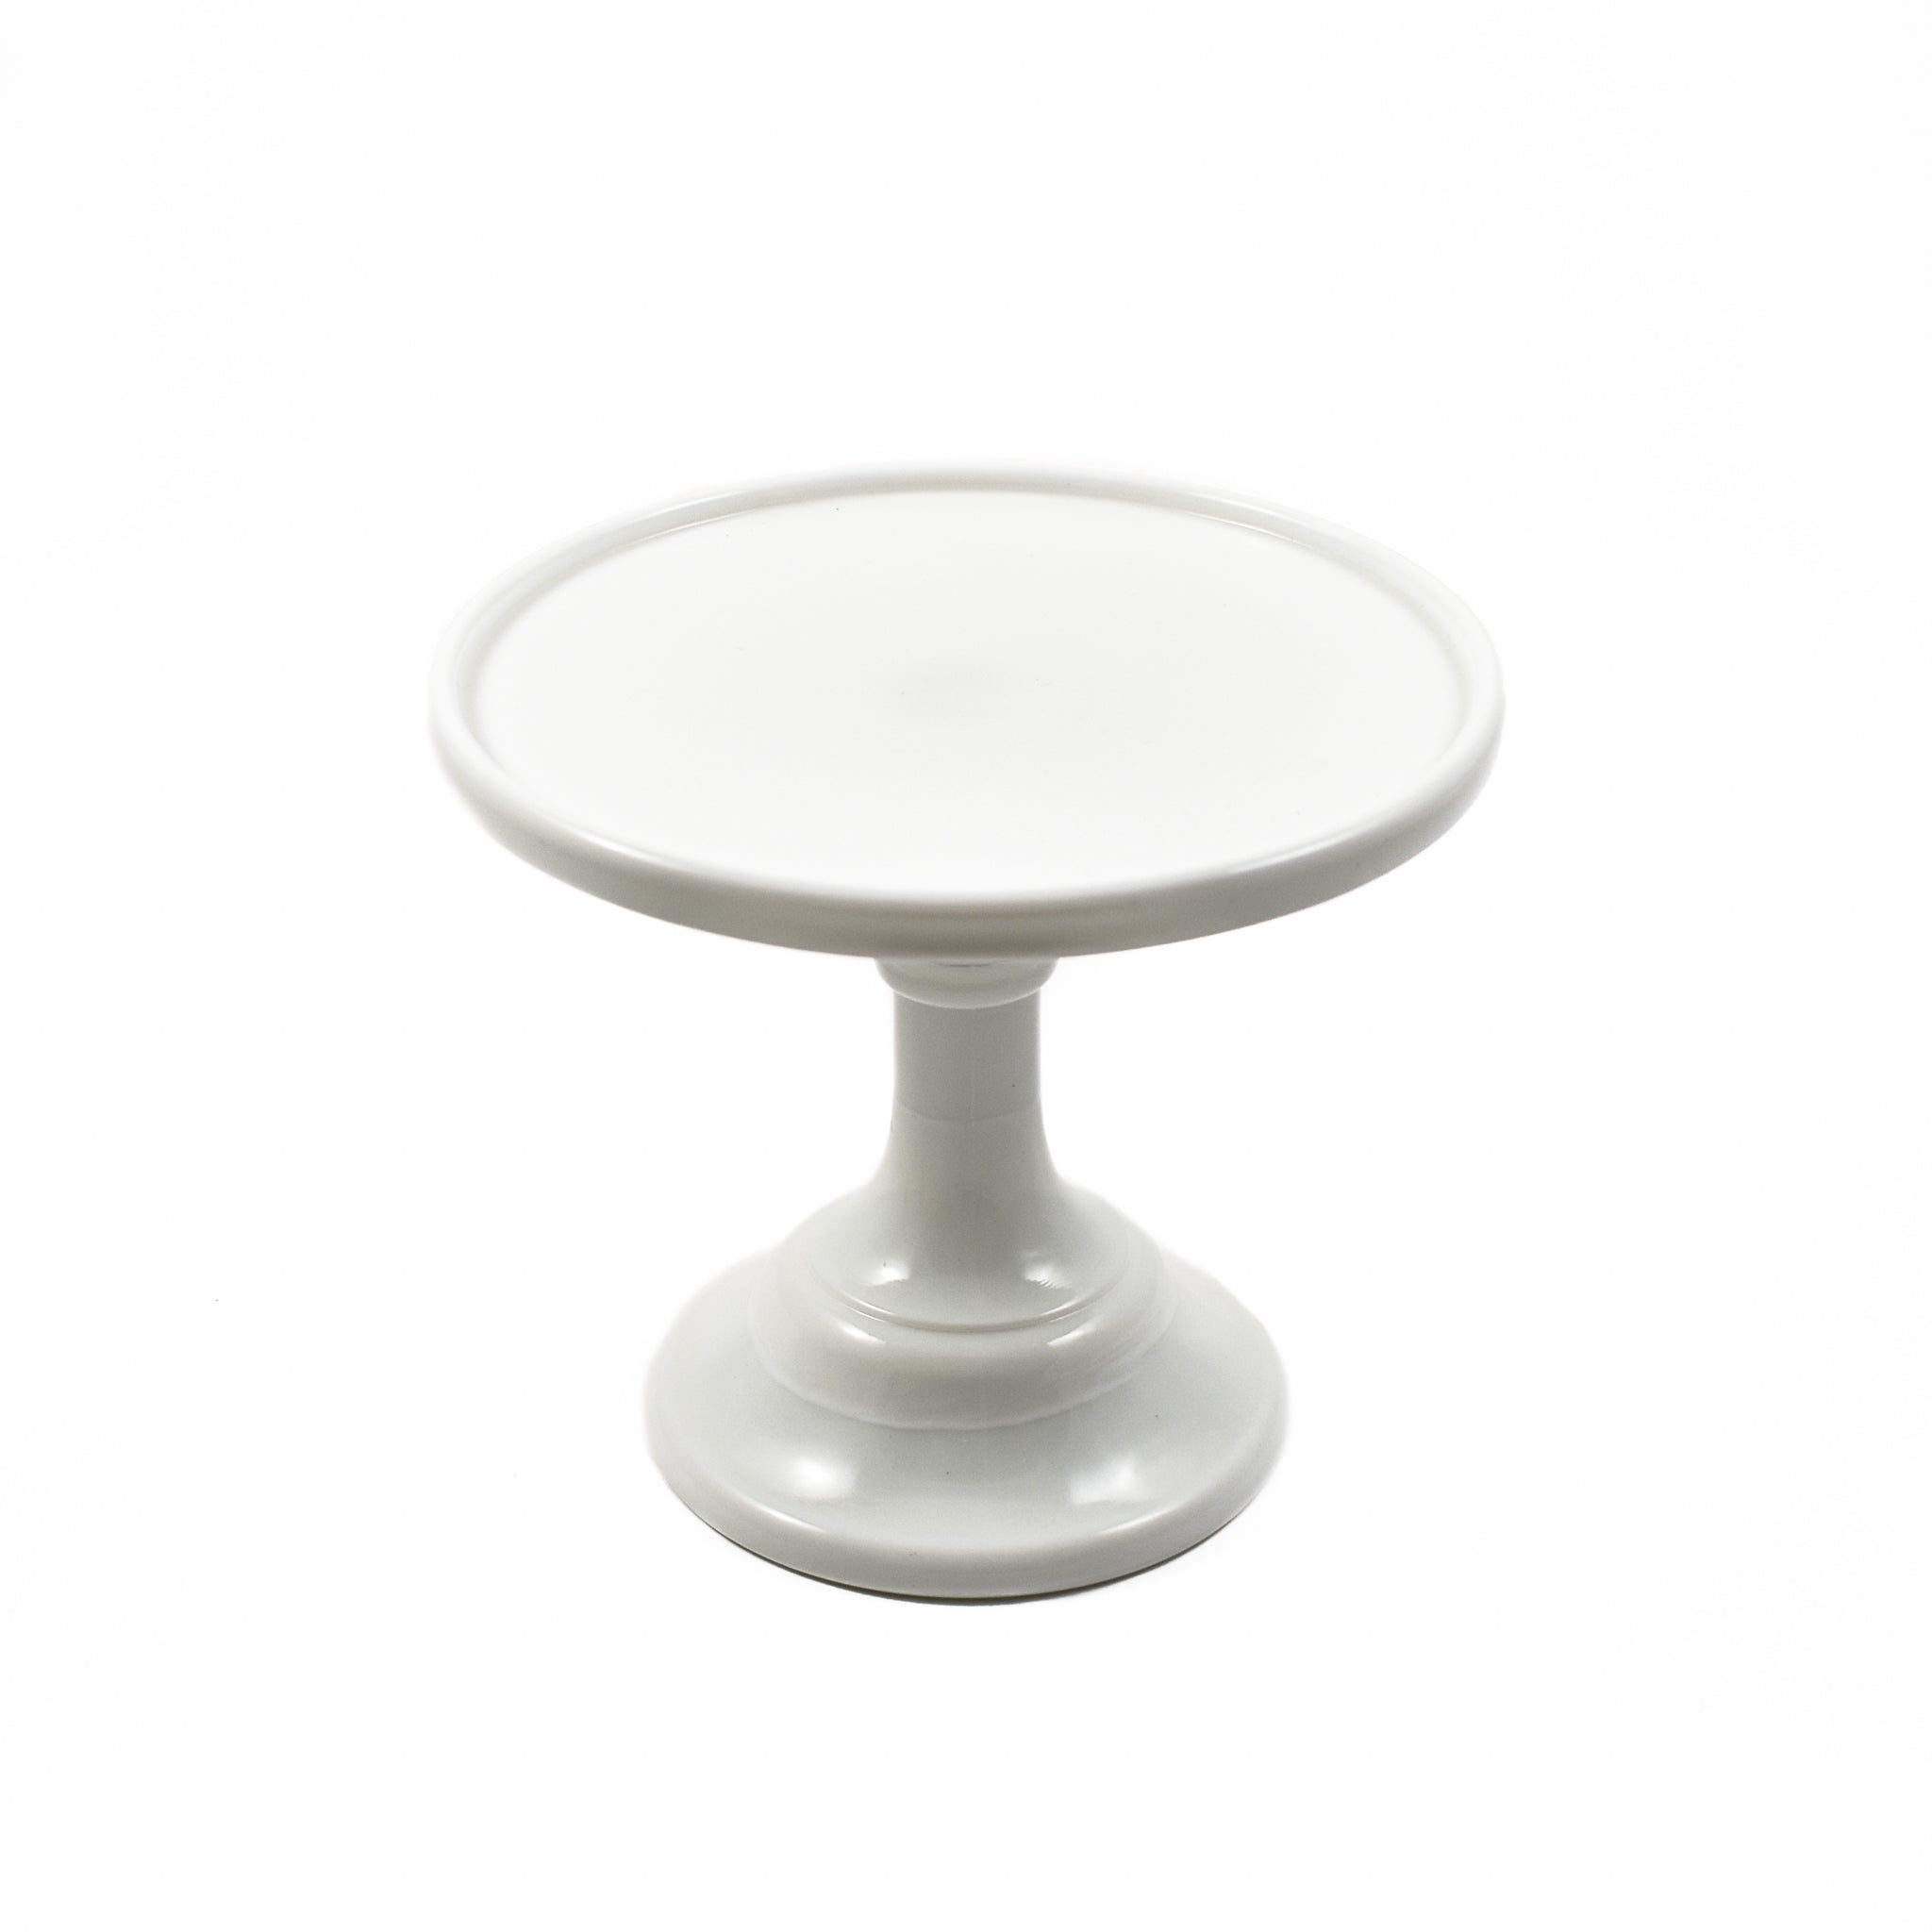 Mosser Glass White Milk Glass Cake Stand